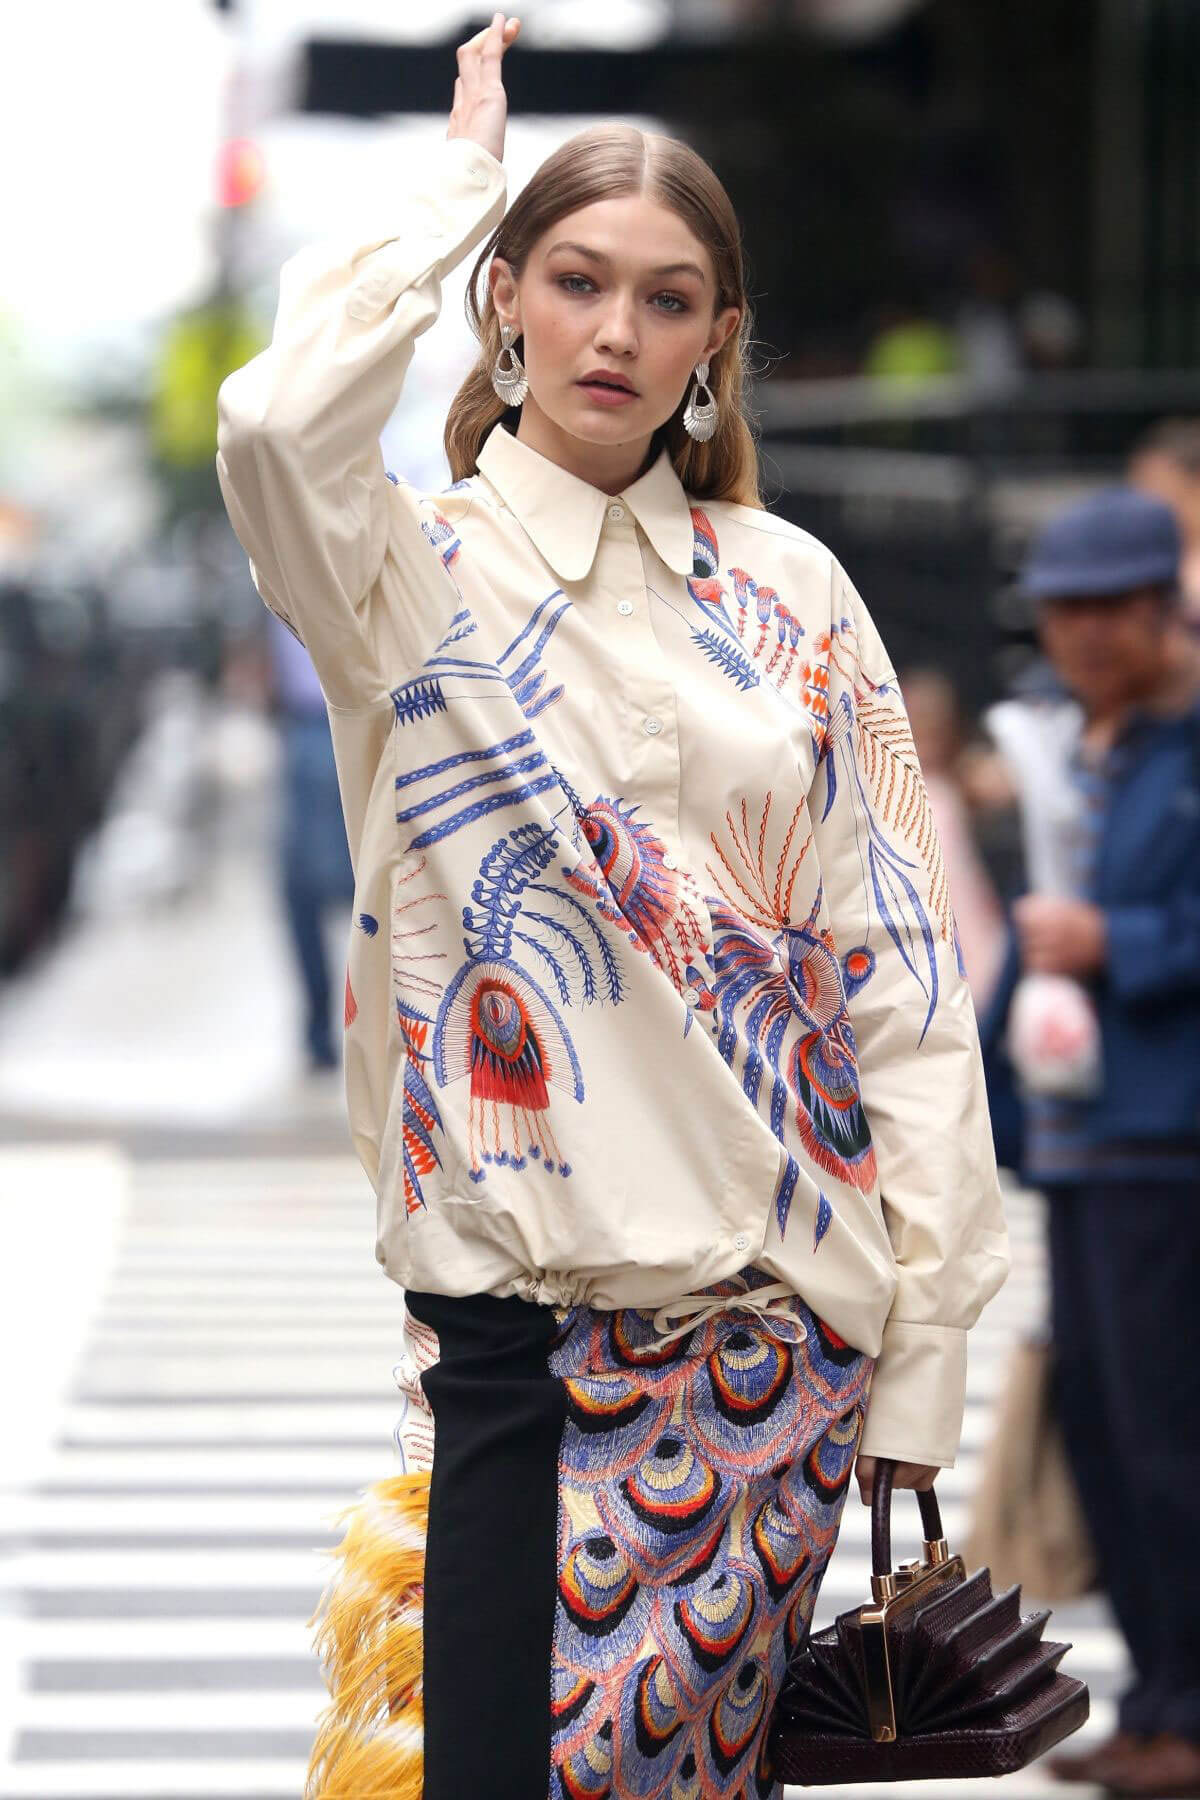 Gigi Hadid on The Set of a Photoshoot in New York 2018/05/31 24